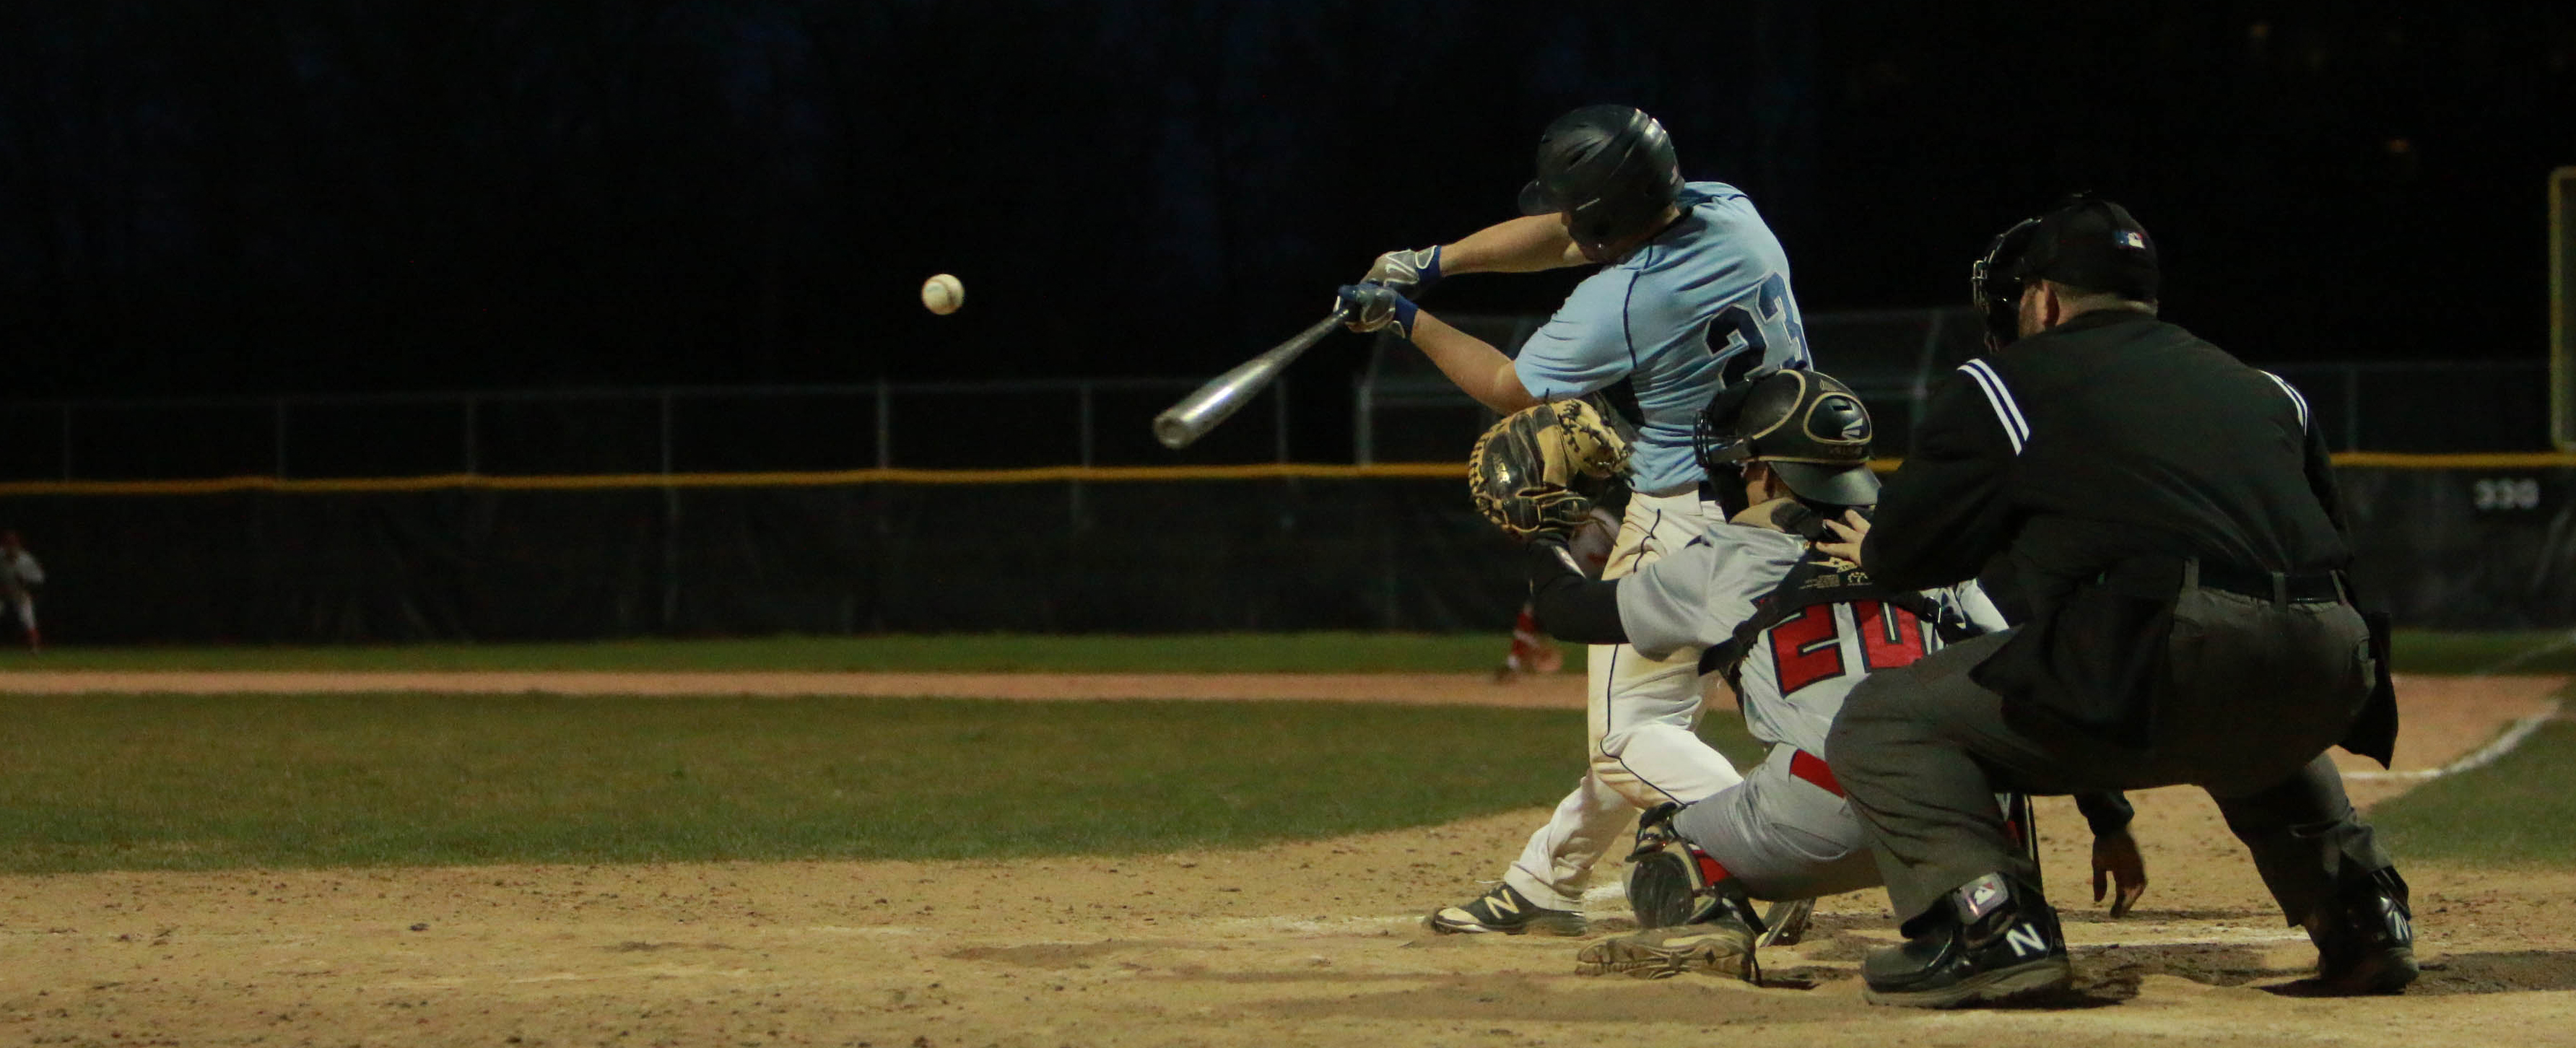 Baseball Splits With Rivier; Earns No. 3 Seed for Postseason Tournament